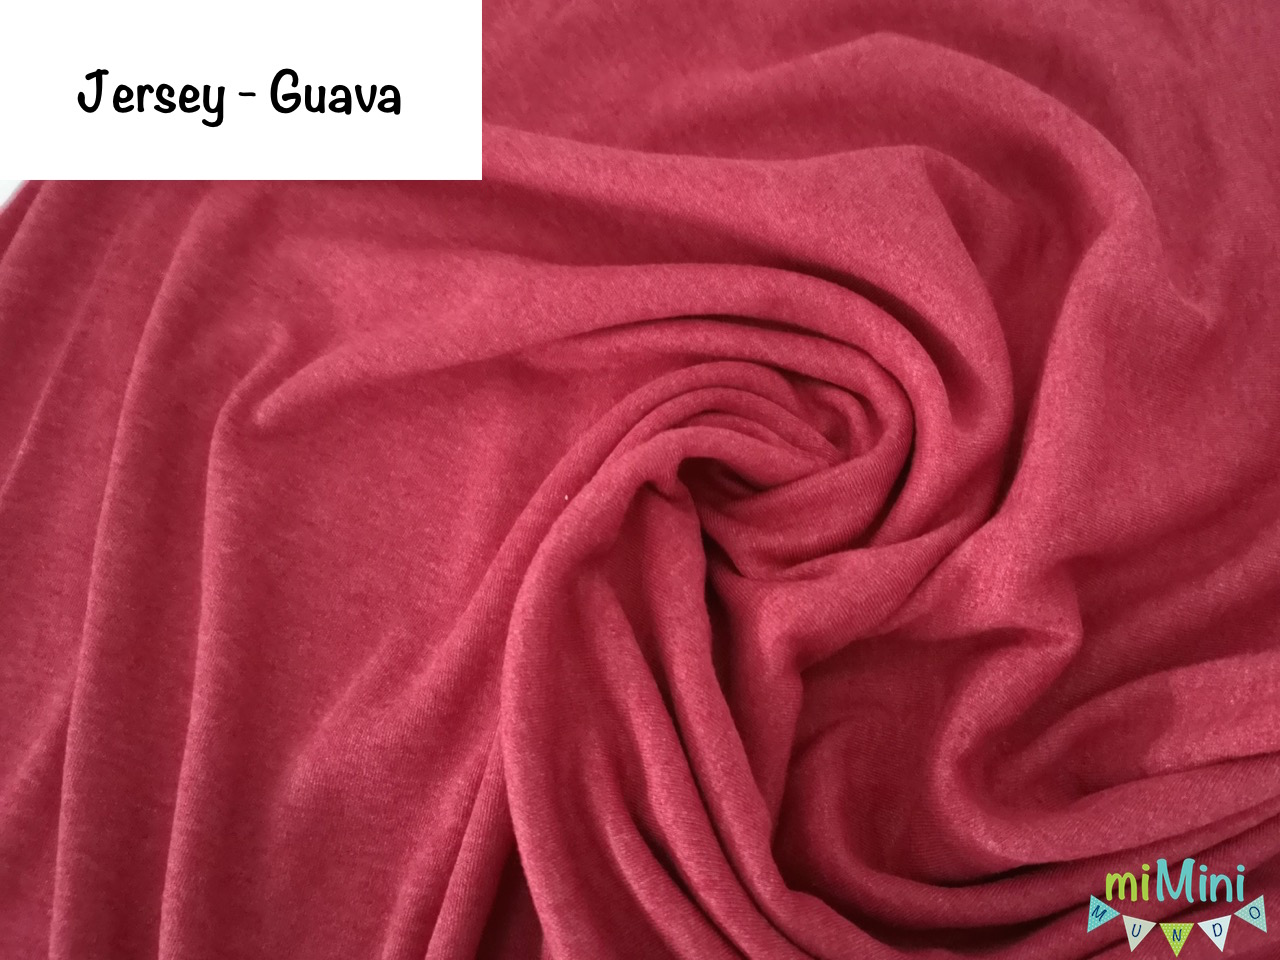 Jersey - Guava